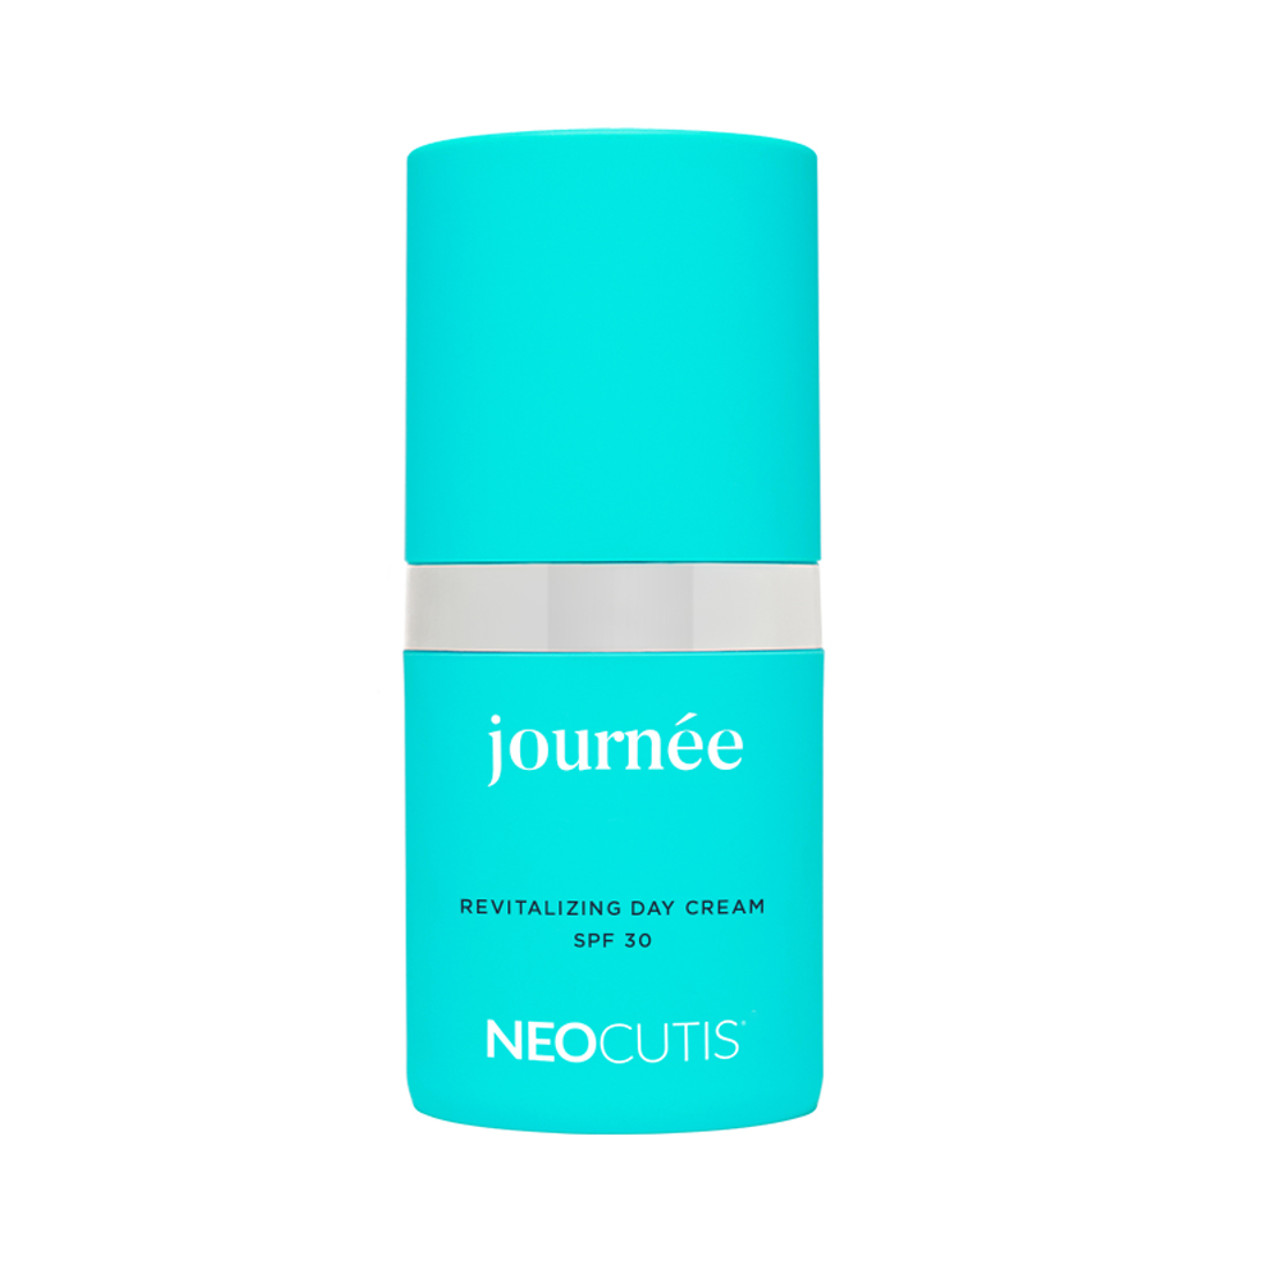 Neocutis Journee Bio-restorative Day Cream with PSP and SPF 30 30 mL